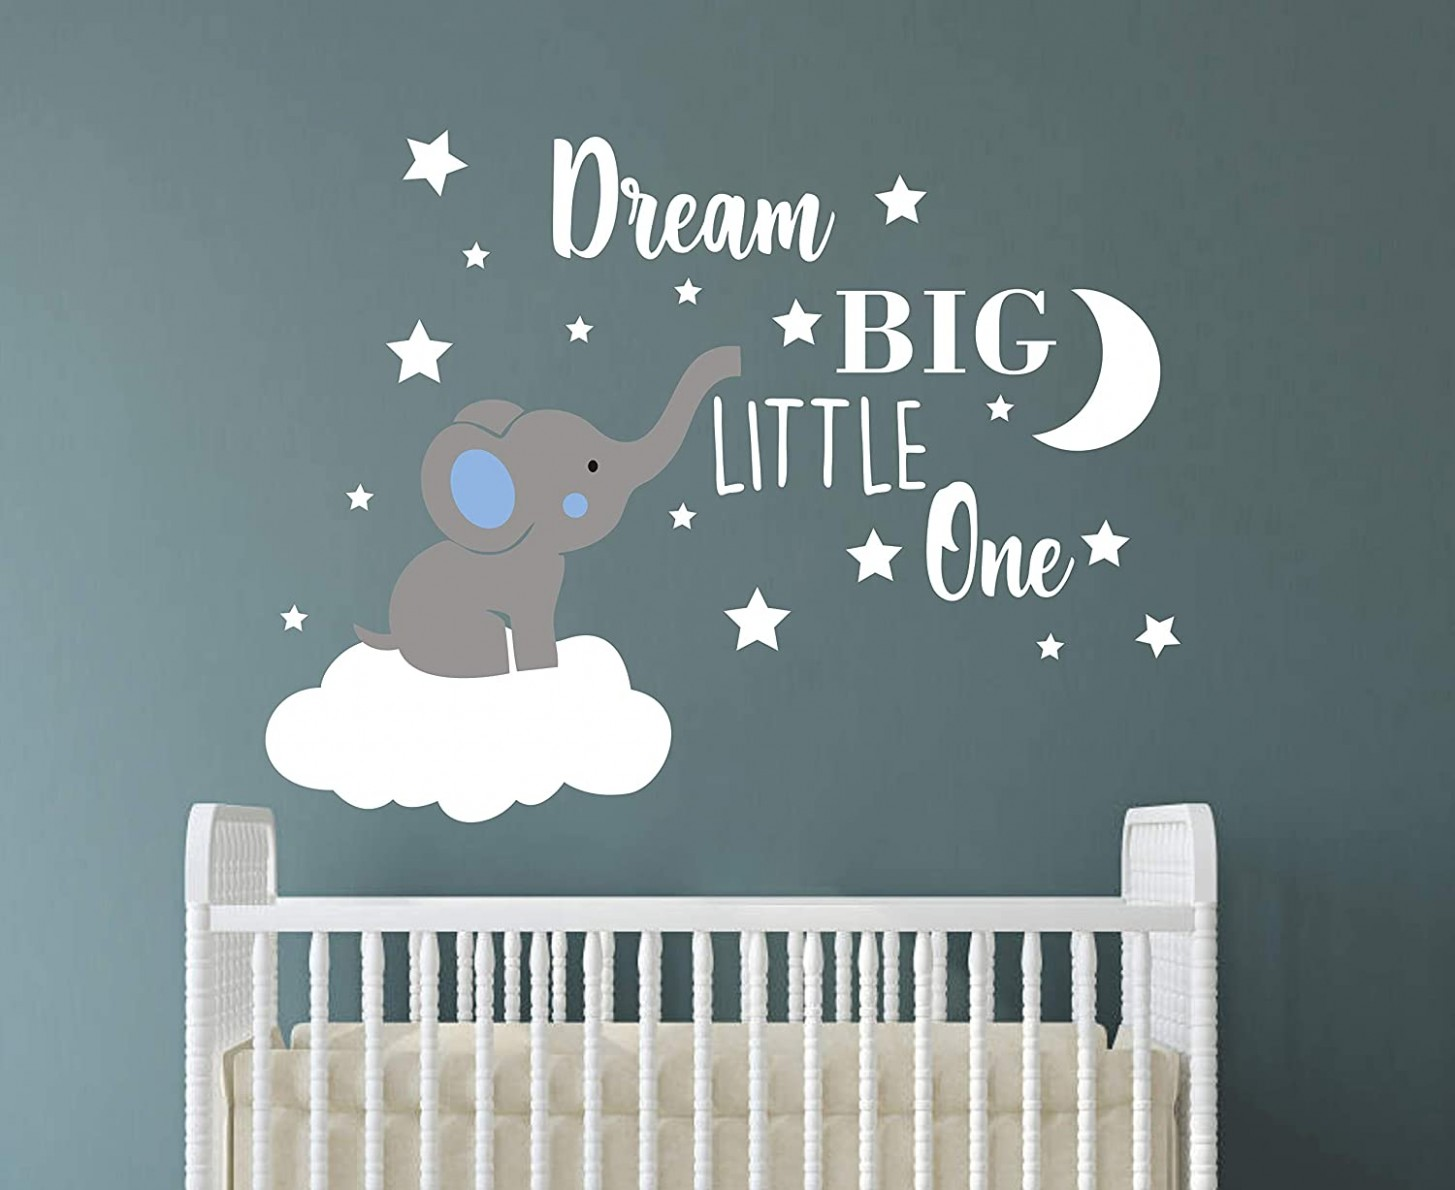 Dream Big Little One Elephant Wall Decal, Quote Wall Stickers, Baby Room  Wall Decor, Vinyl Wall Decals for Children Baby Kids Boy Girl Bedroom  Nursery  - Baby Room Vinyl Wall Art